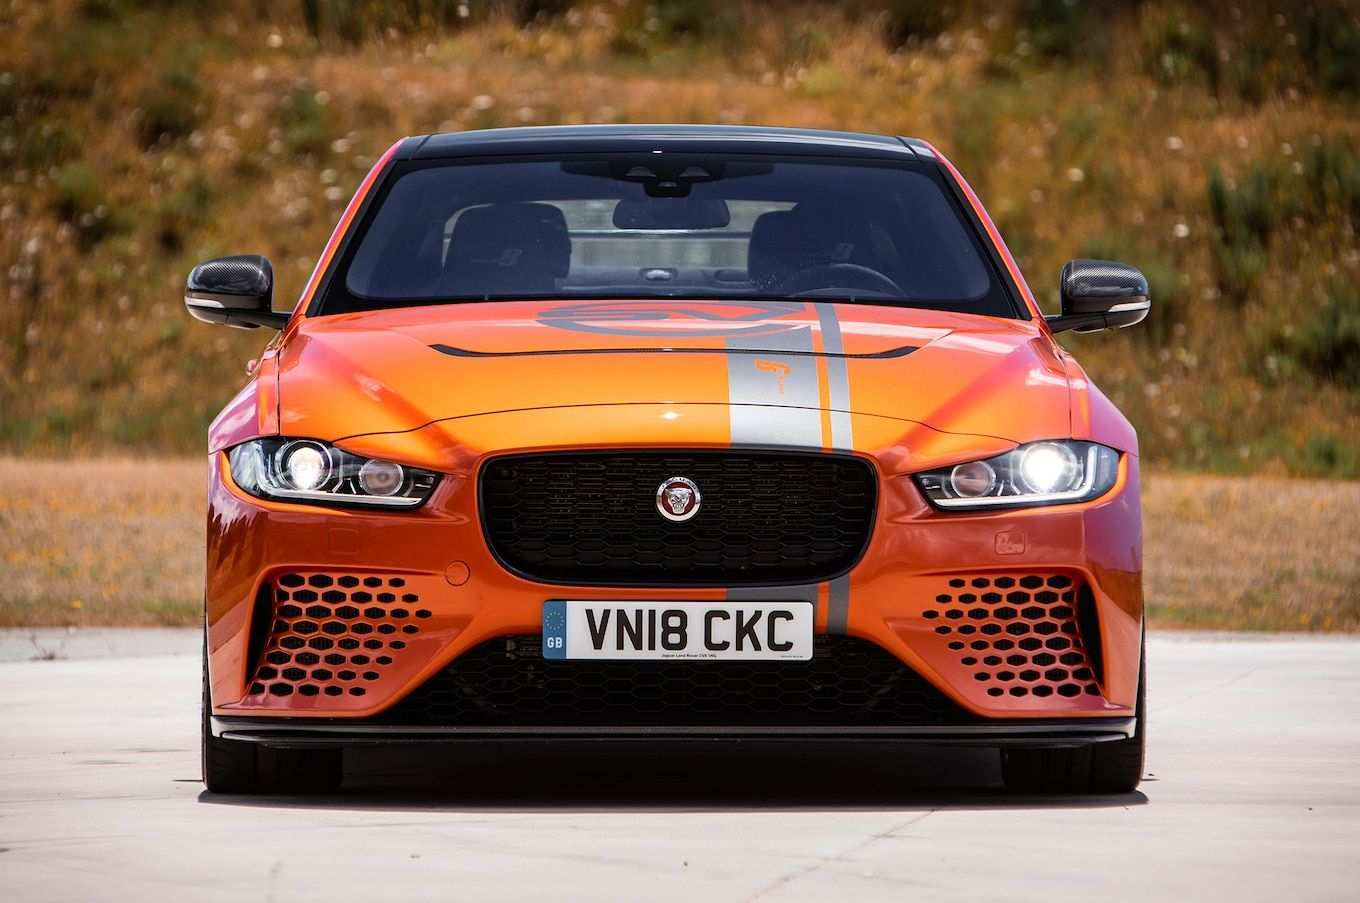 44 Best Review 2020 Jaguar Xe Sv Project 8 New Review by 2020 Jaguar Xe Sv Project 8